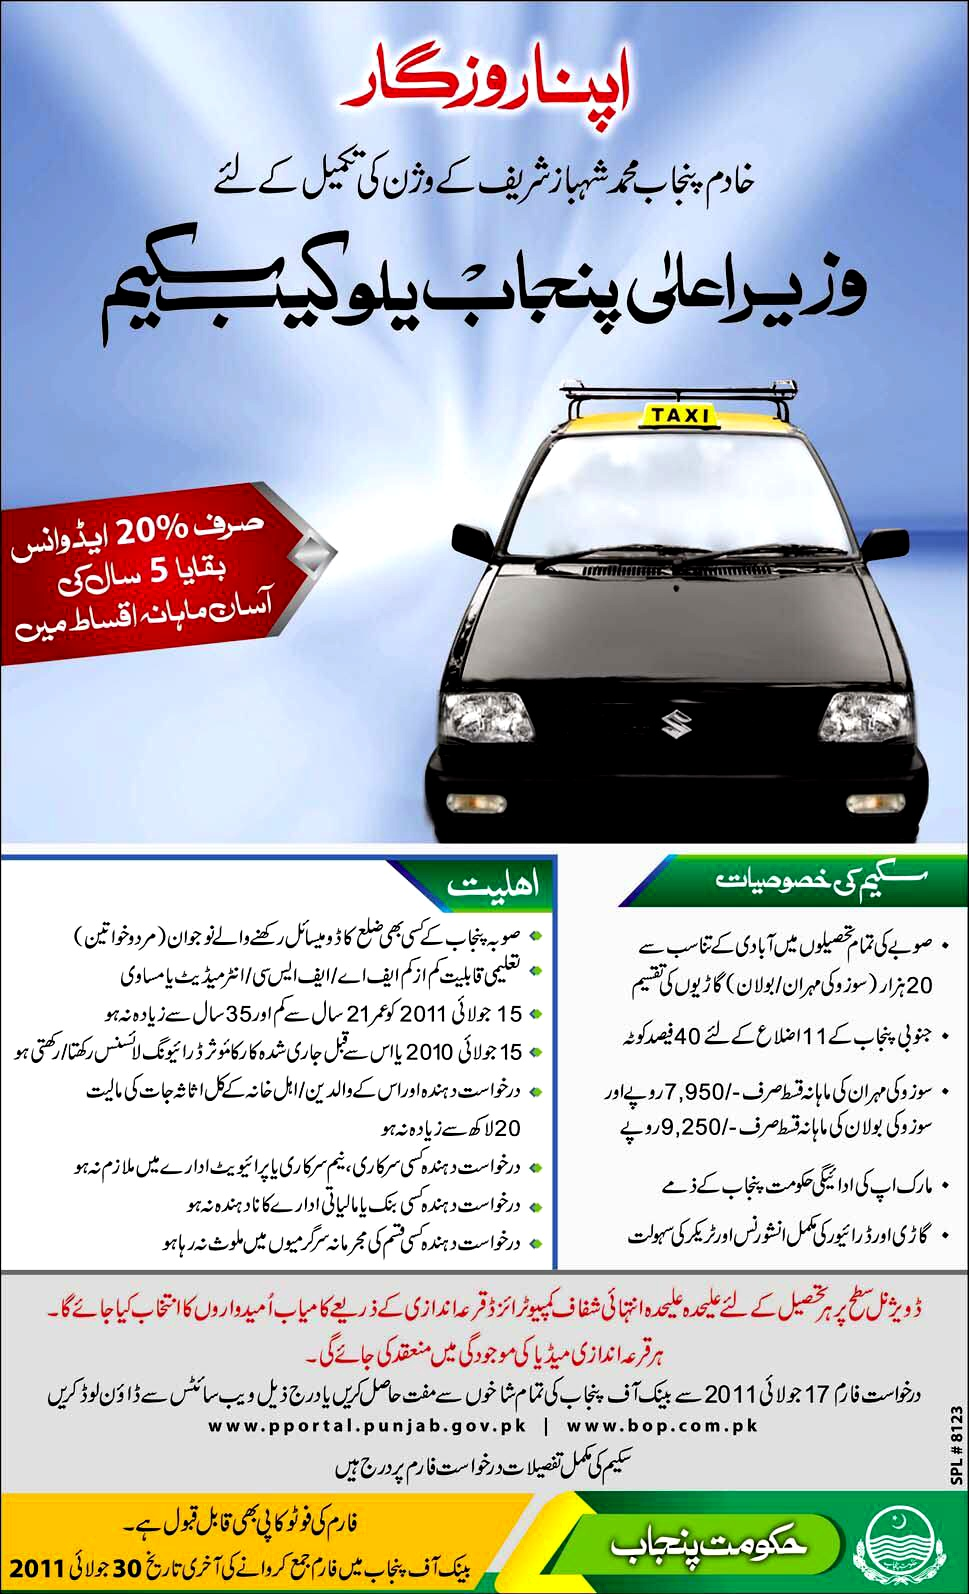 SCHEME for Detail Visit www.pportal.punjab.gov.pk and www.bop.com.pk